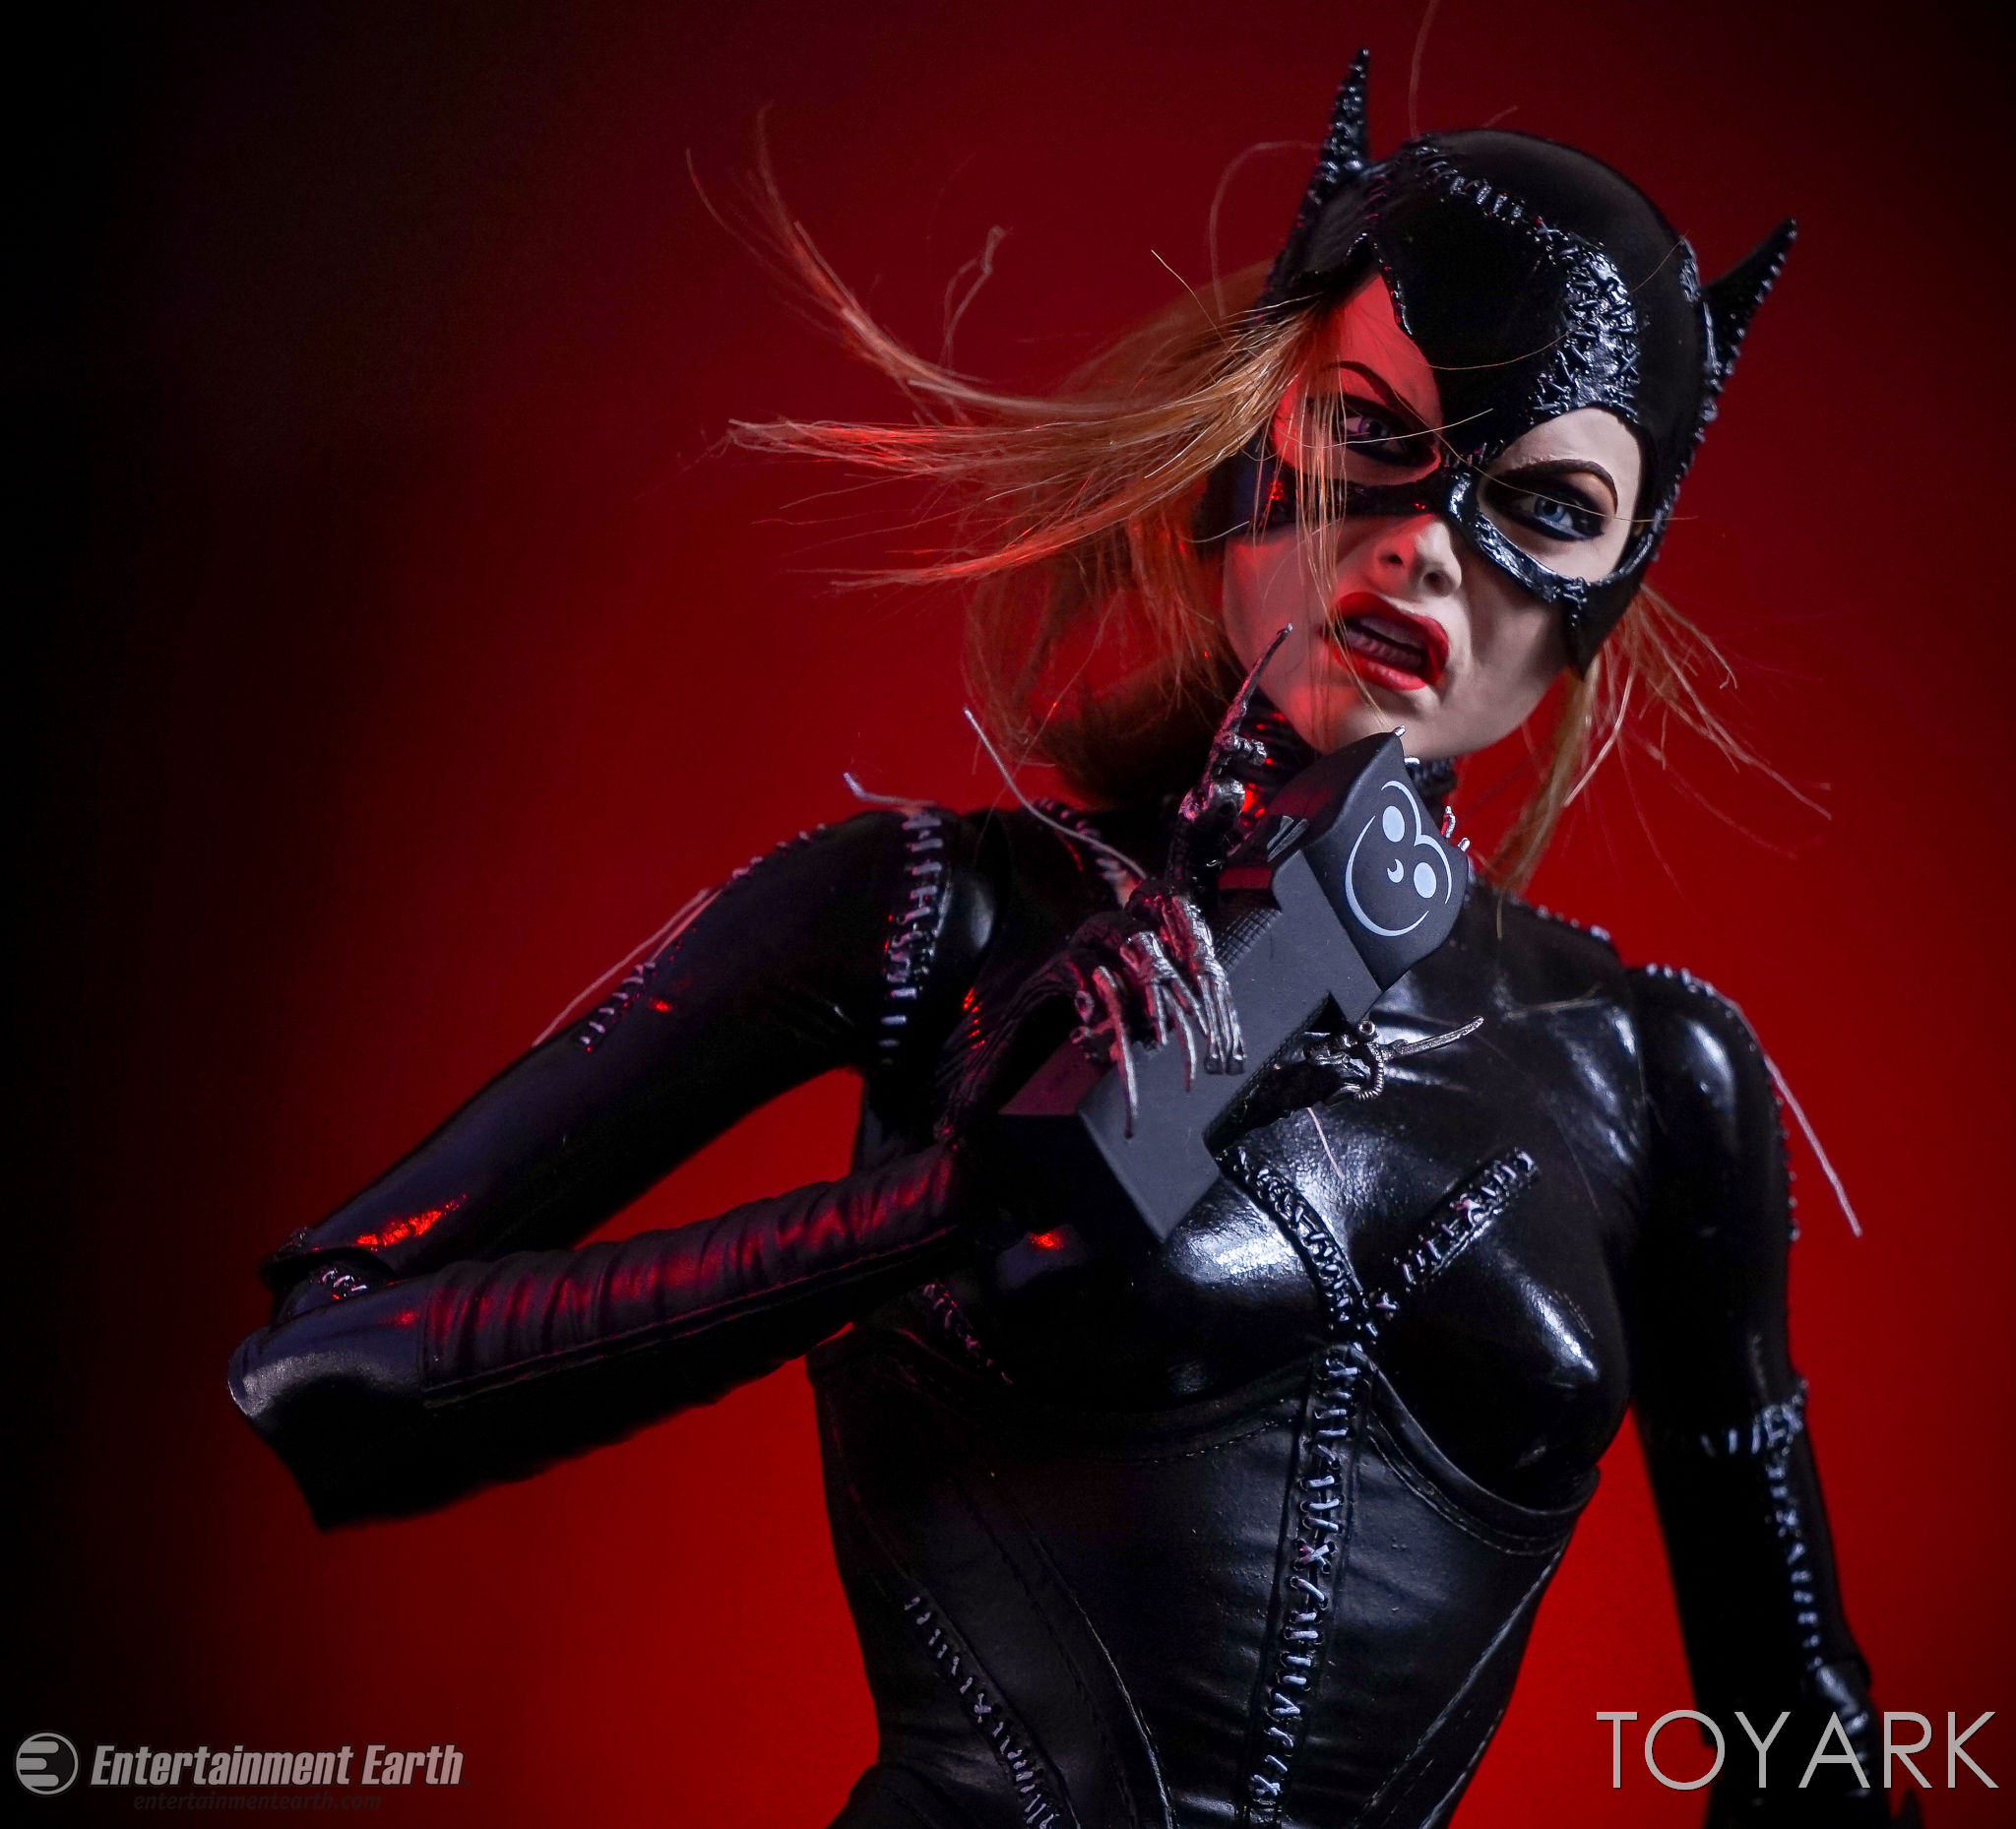 http://news.toyark.com/wp-content/uploads/sites/4/2017/03/NECA-Batman-Returns-Catwoman-026.jpg